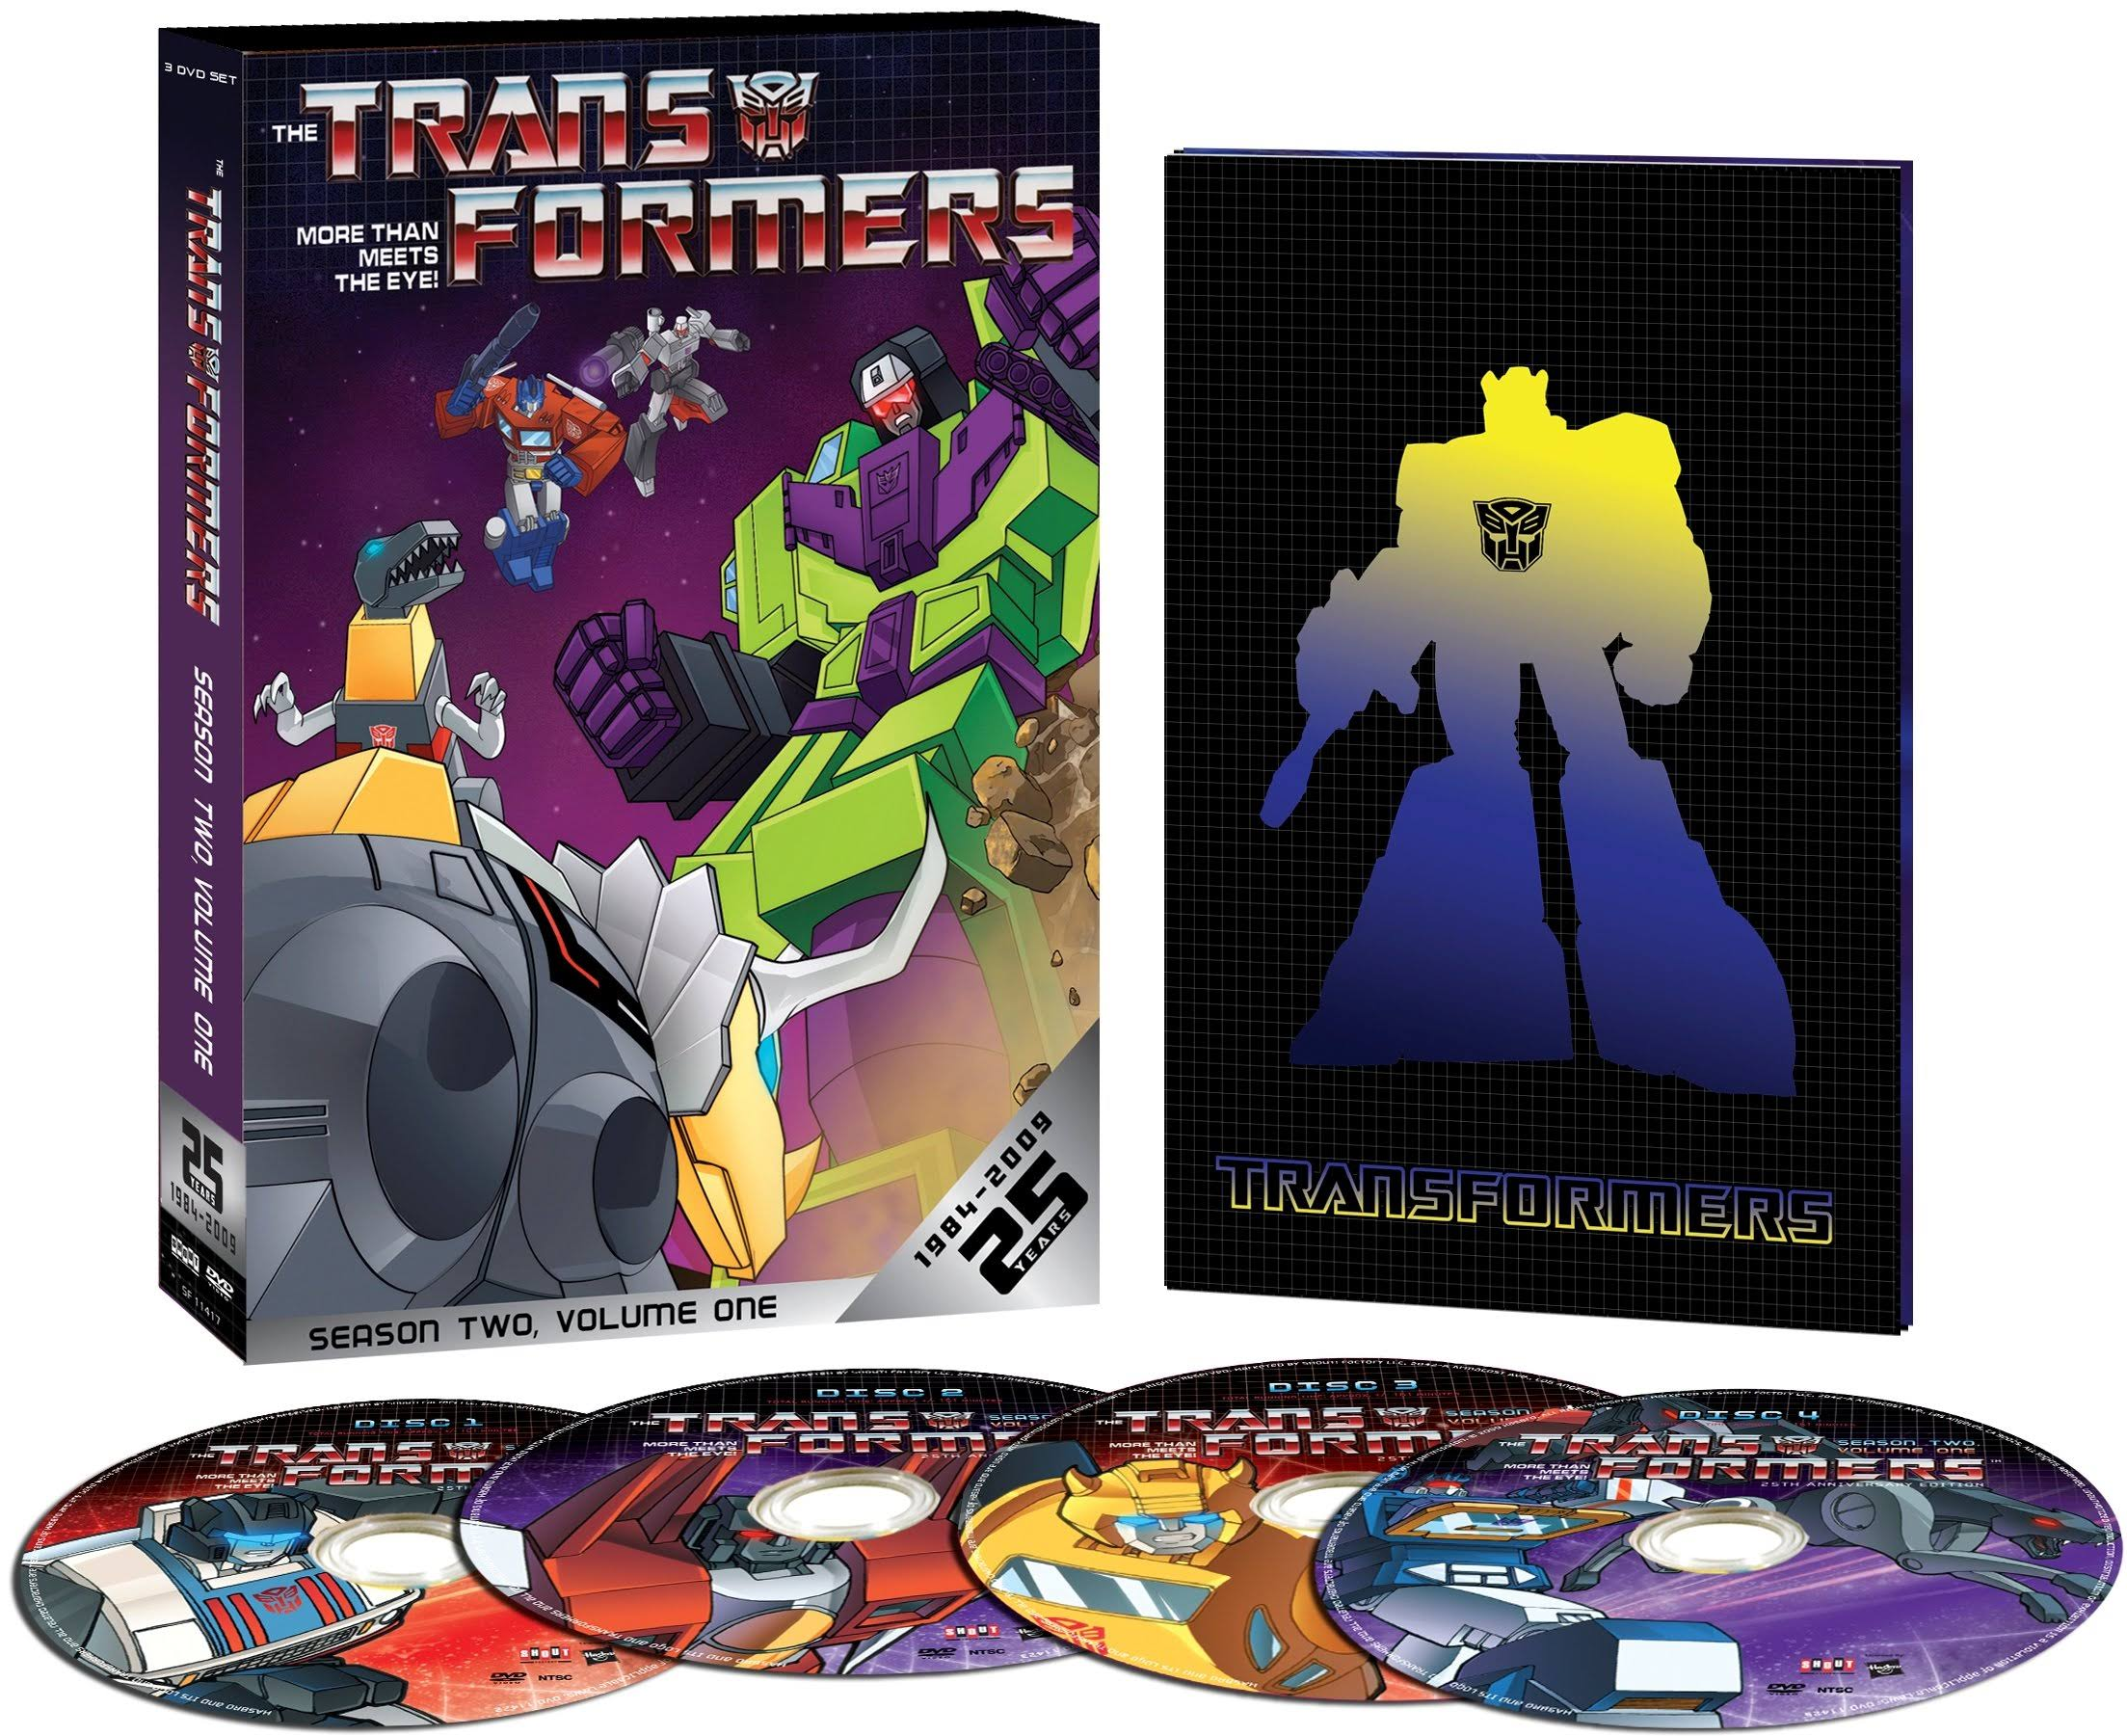 Transformers: Season 2 Volume 1 DVD